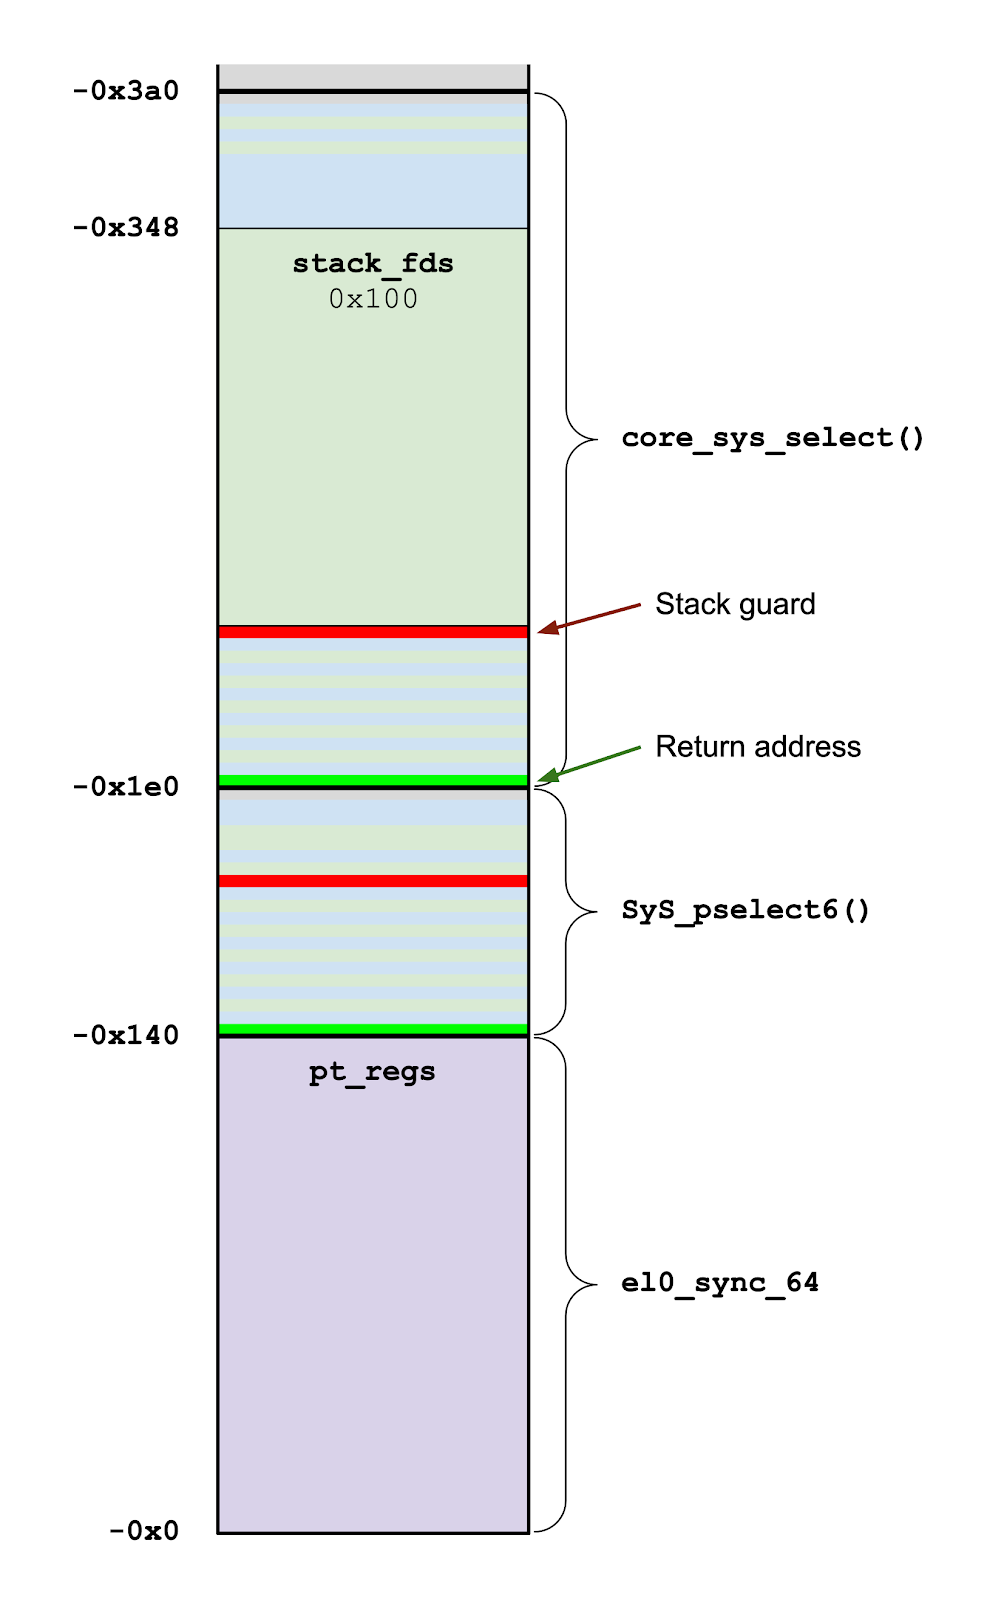 A diagram showing the call stack of core_sys_select(). The topmost stack frame is core_sys_select(), followed by SyS_pselect6(), followed by el0_sync_64.